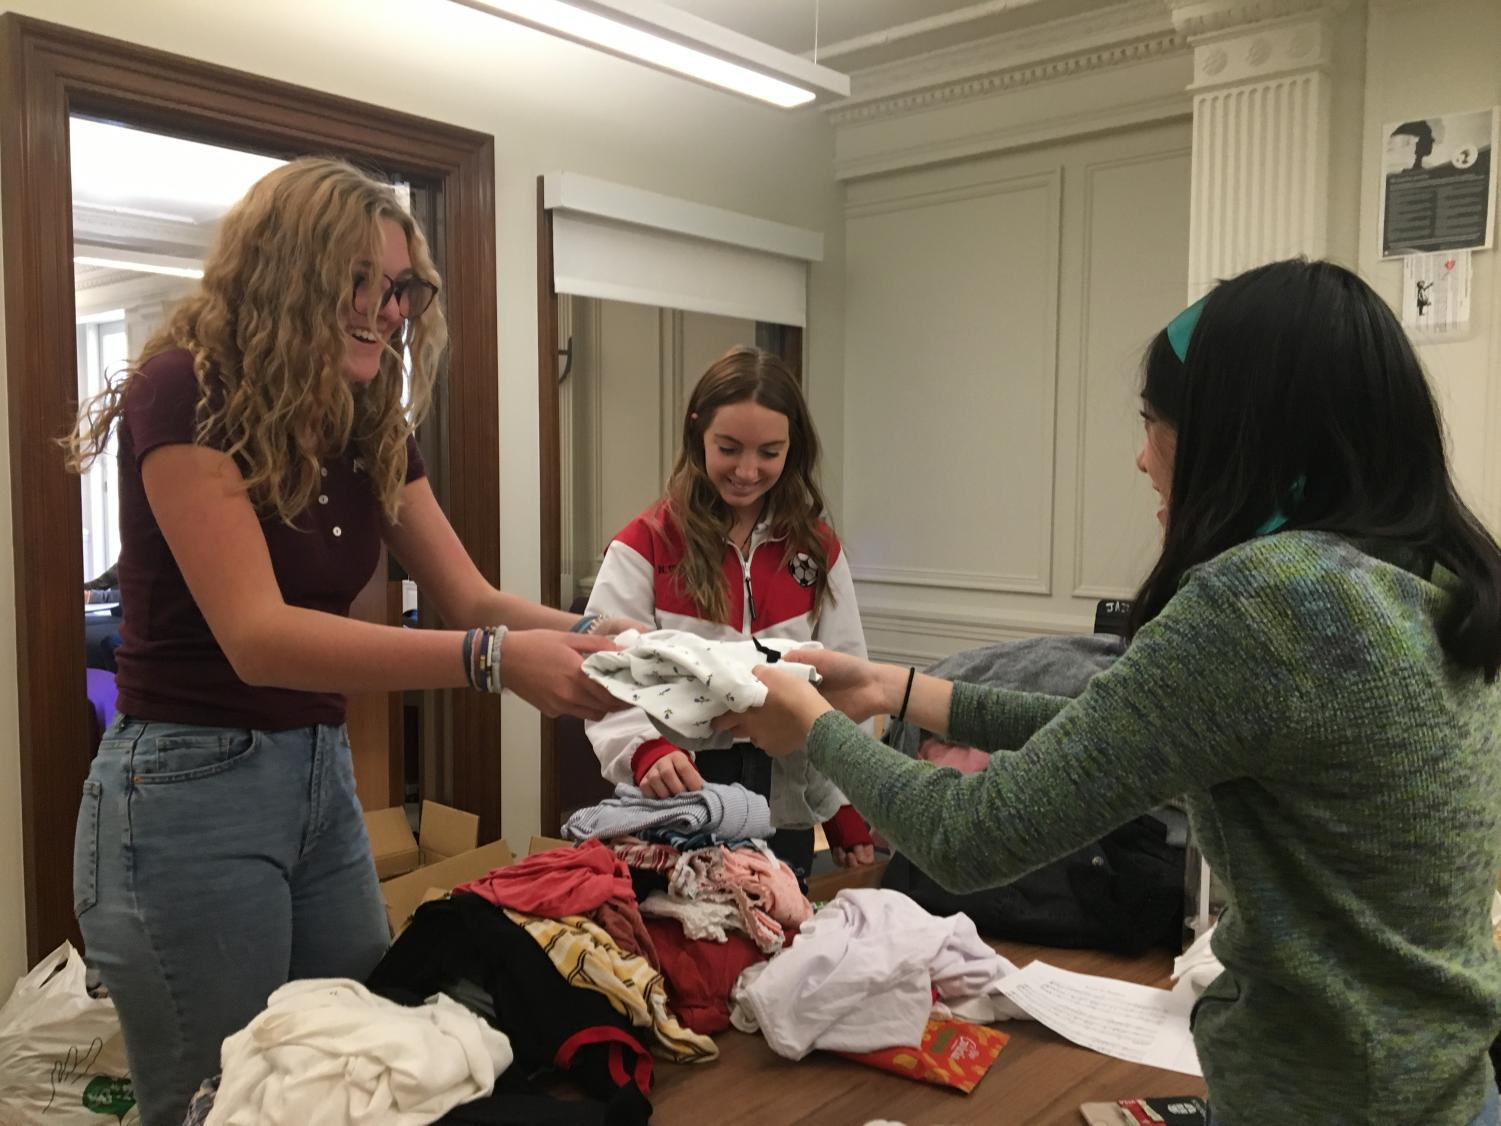 Sophomore Anneli Dolan donates a shirt to the Eco Friends clothing swap.  Thrifting and purchasing second-hand helps to reduce plastic in landfills and carbon dioxide emissions.